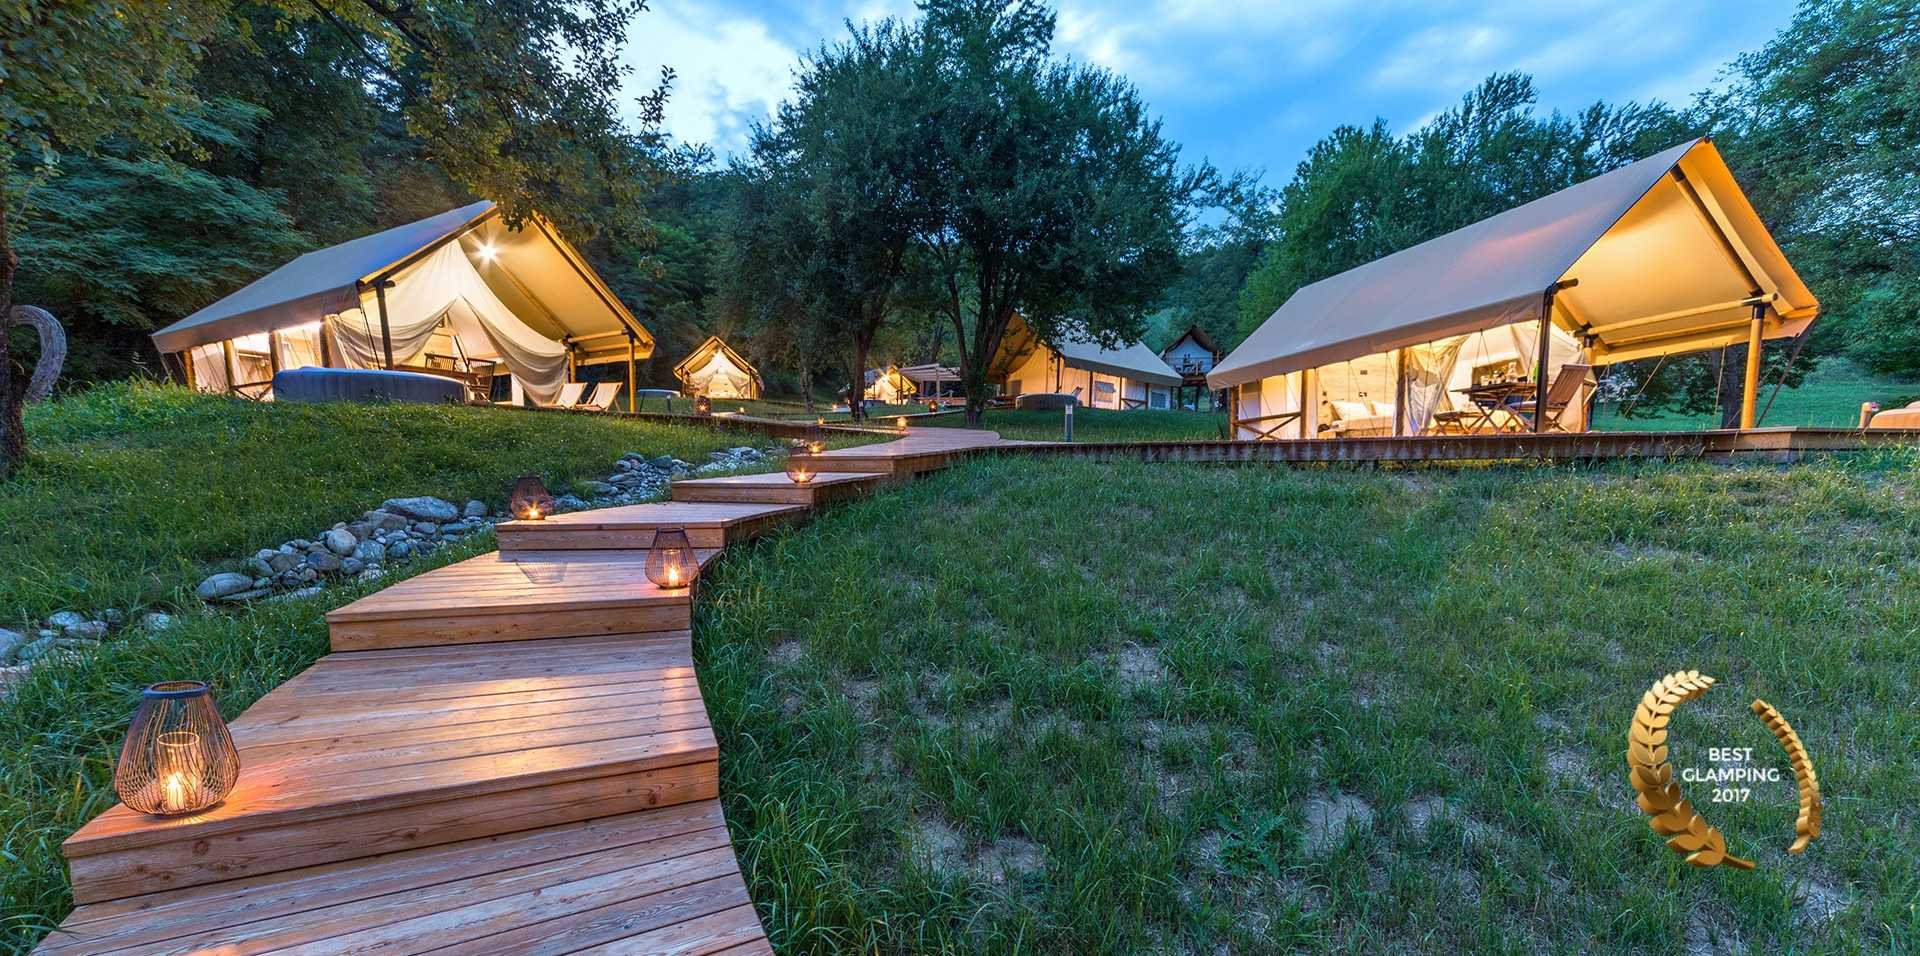 Vineyard Glamping resort